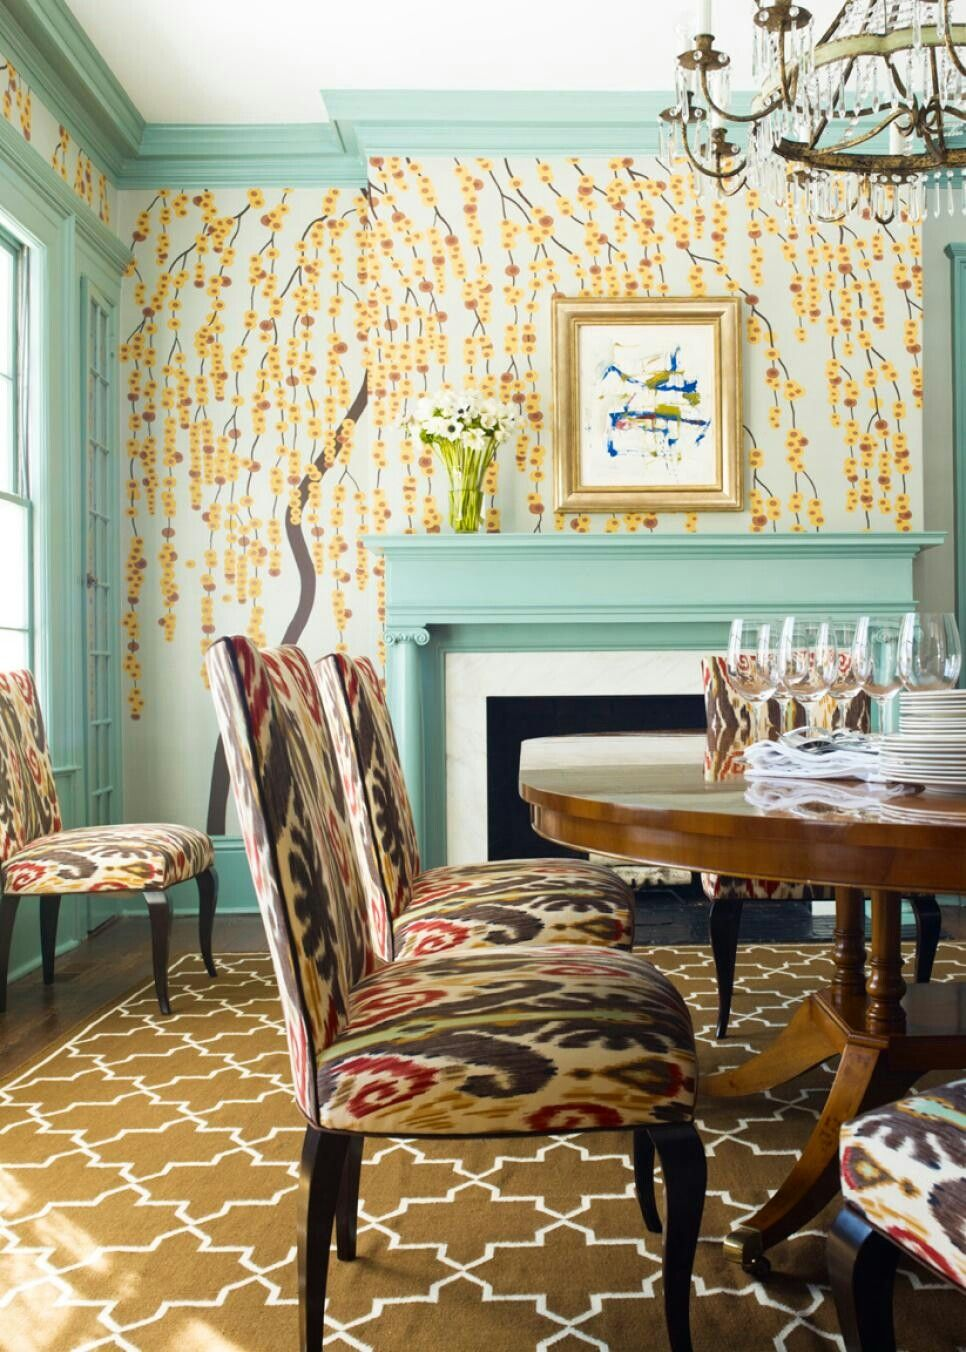 Pin by Harmony Guillen on dining room ideas (With images ...